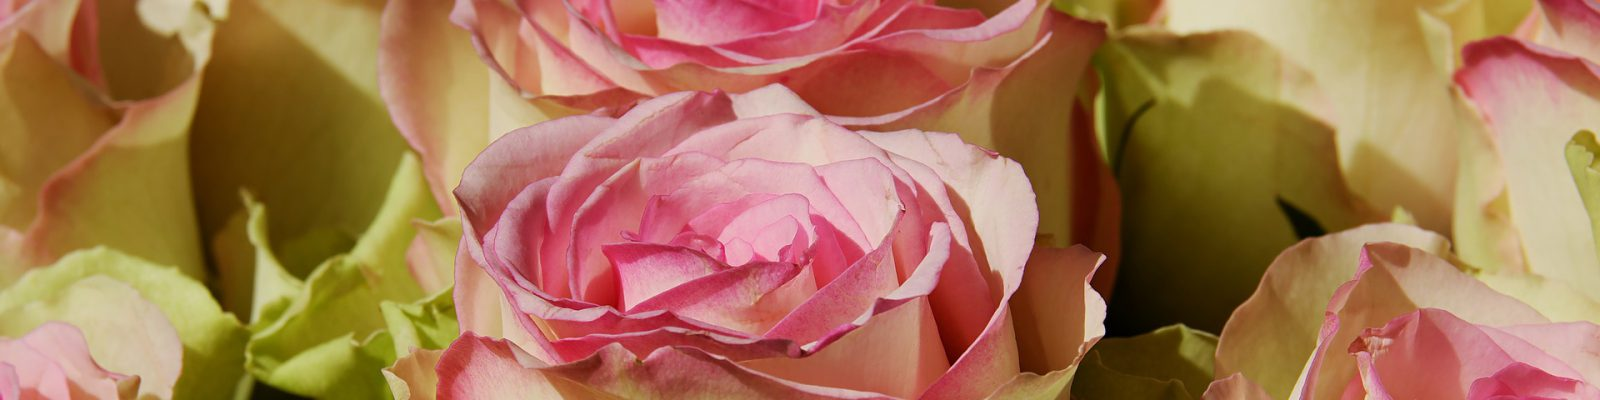 Roses for header image for Guy Wakeling Jewellery